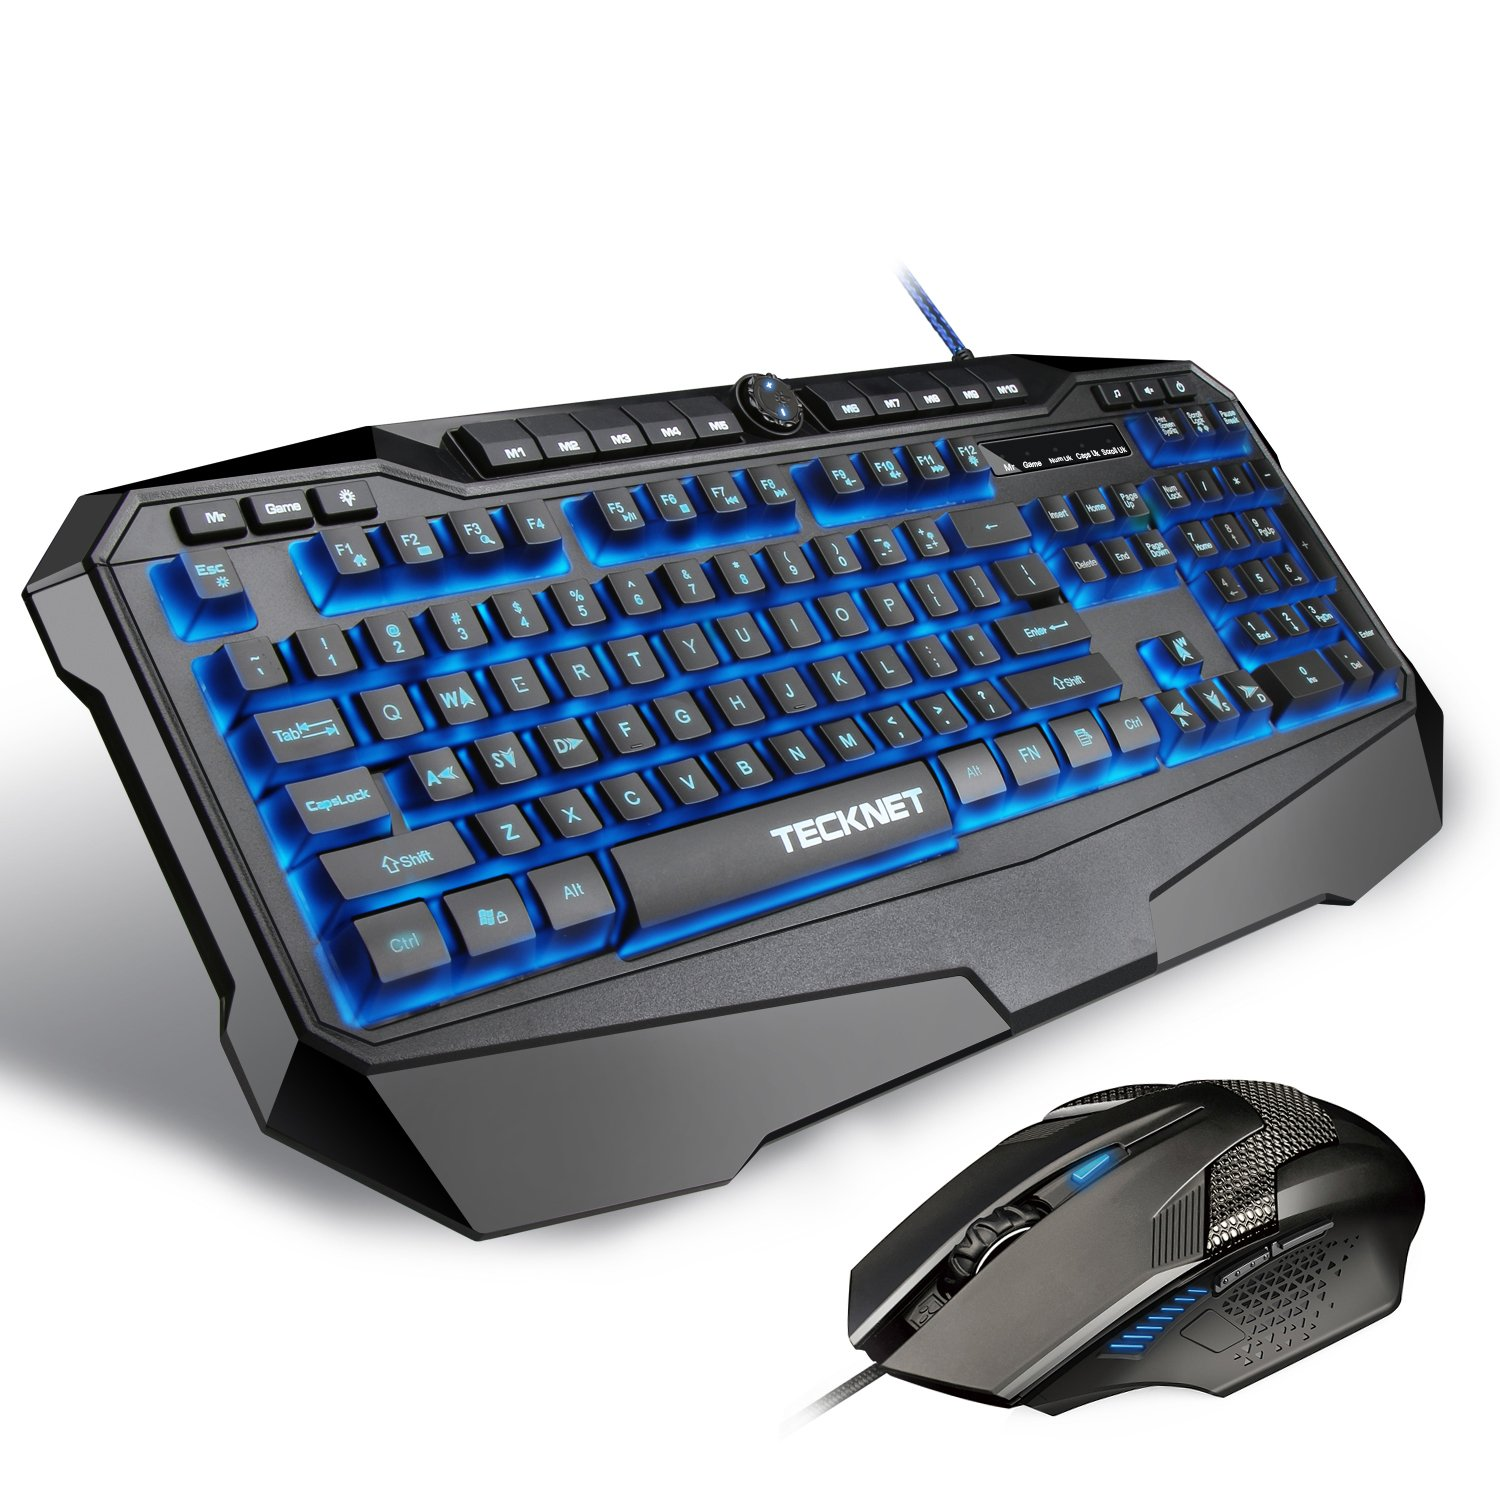 TECKNET Gryphon Pro LED Illuminated Programmable Gaming Keyboard and Mouse  set, Water-Resistant Design, US layout